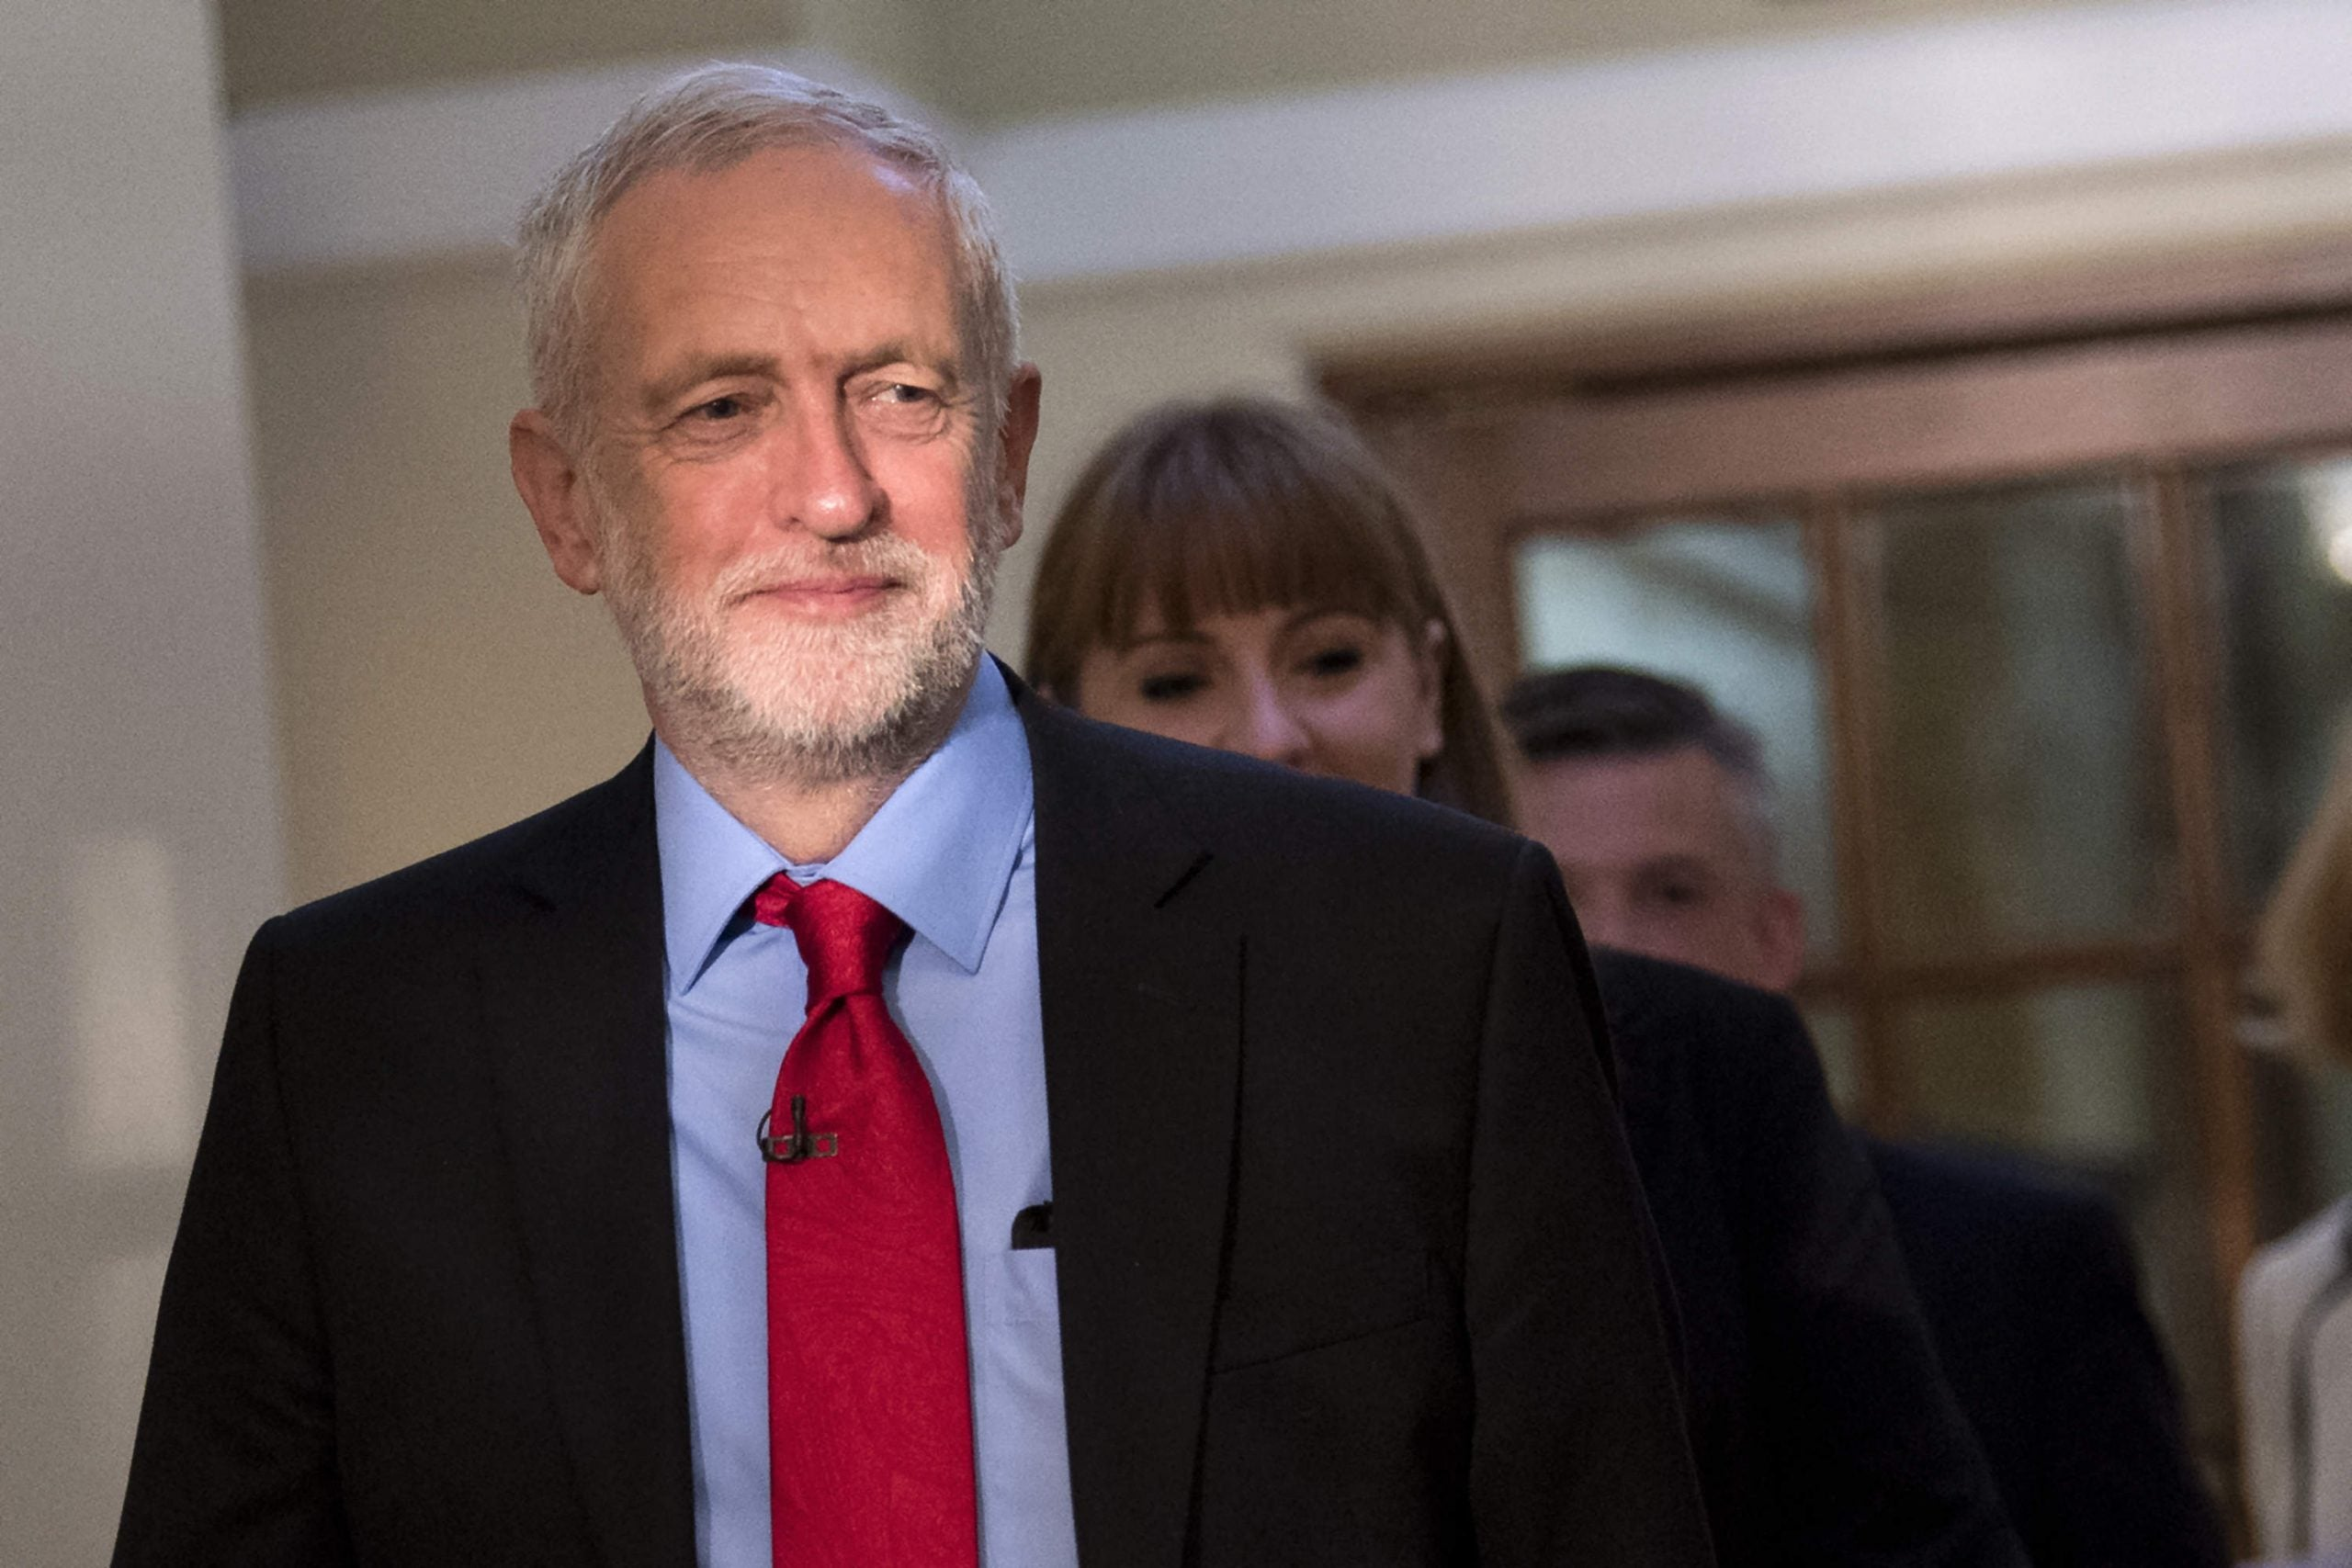 Jeremy Corbyn predicts Labour victory as he avoids hung parliament questions